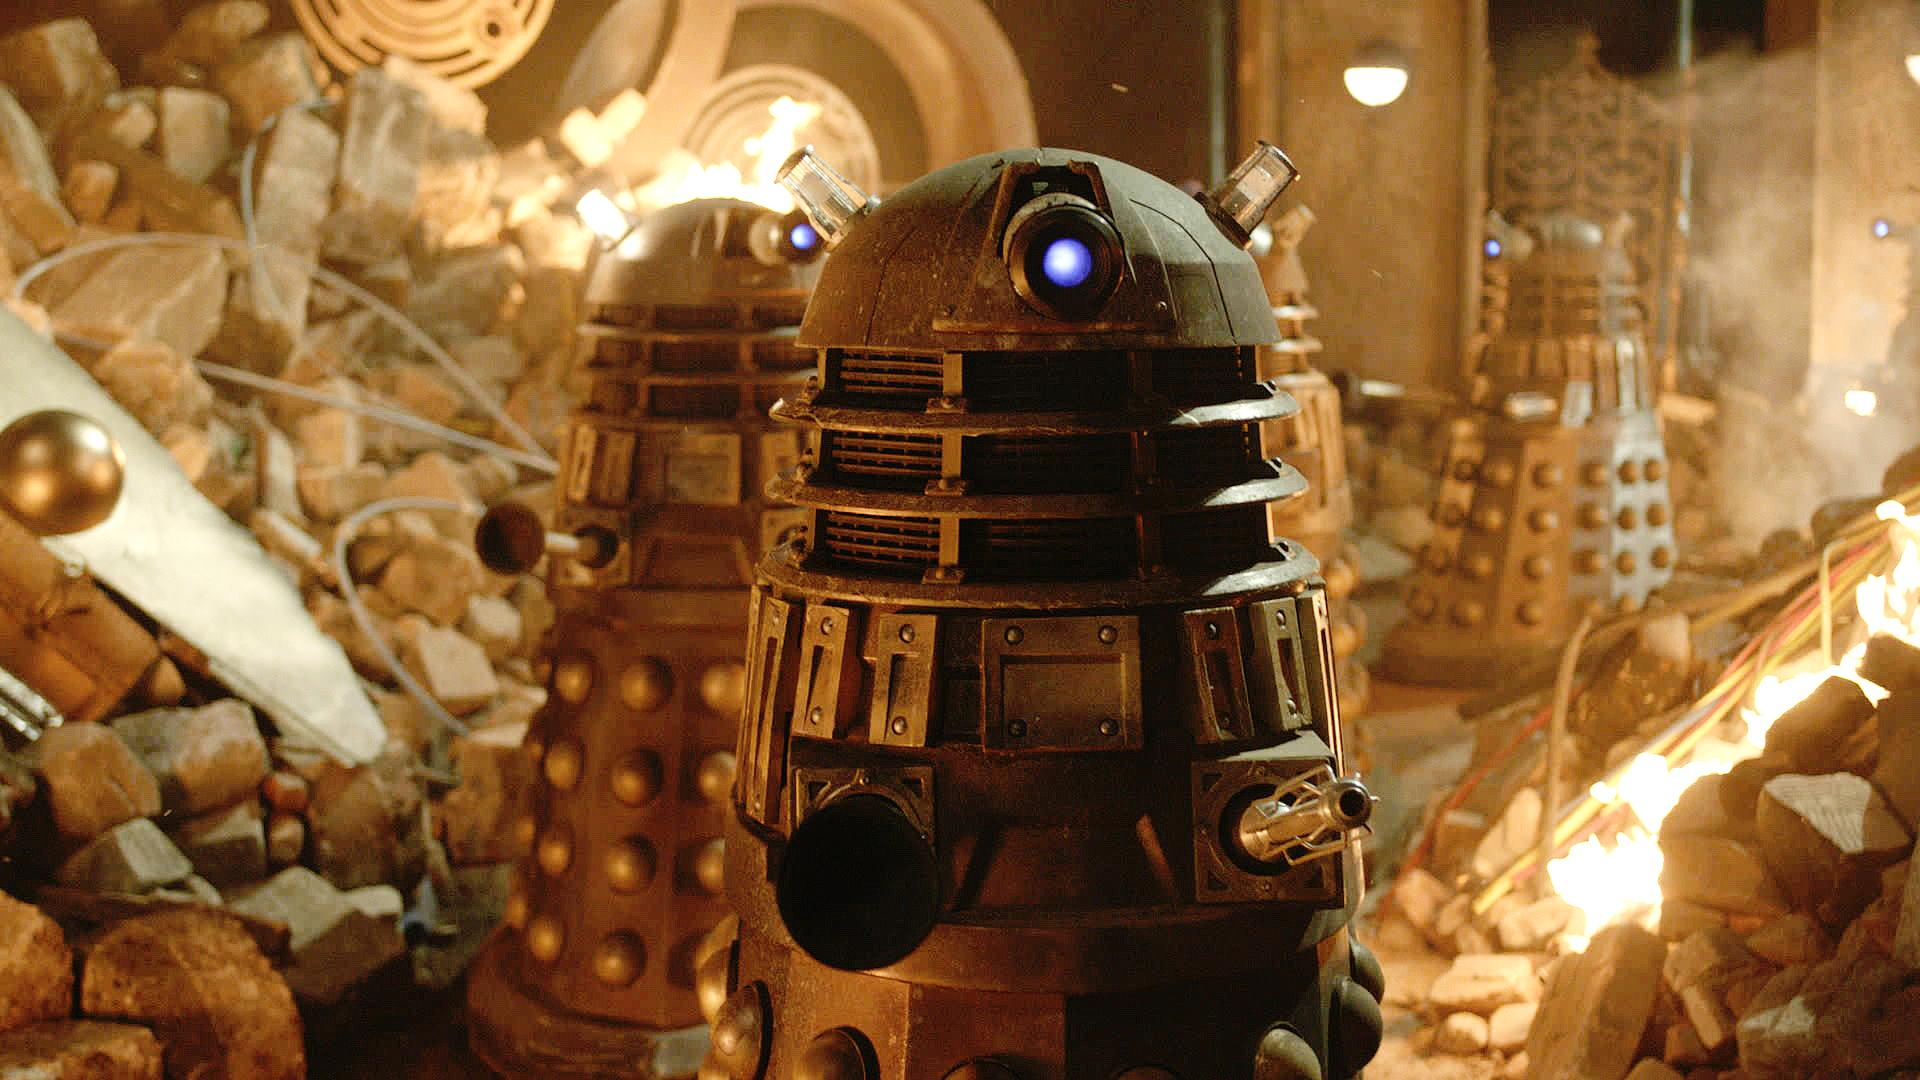 50th Anniversary Special: First Official Dalek photo (Credit: BBC Doctor Who)